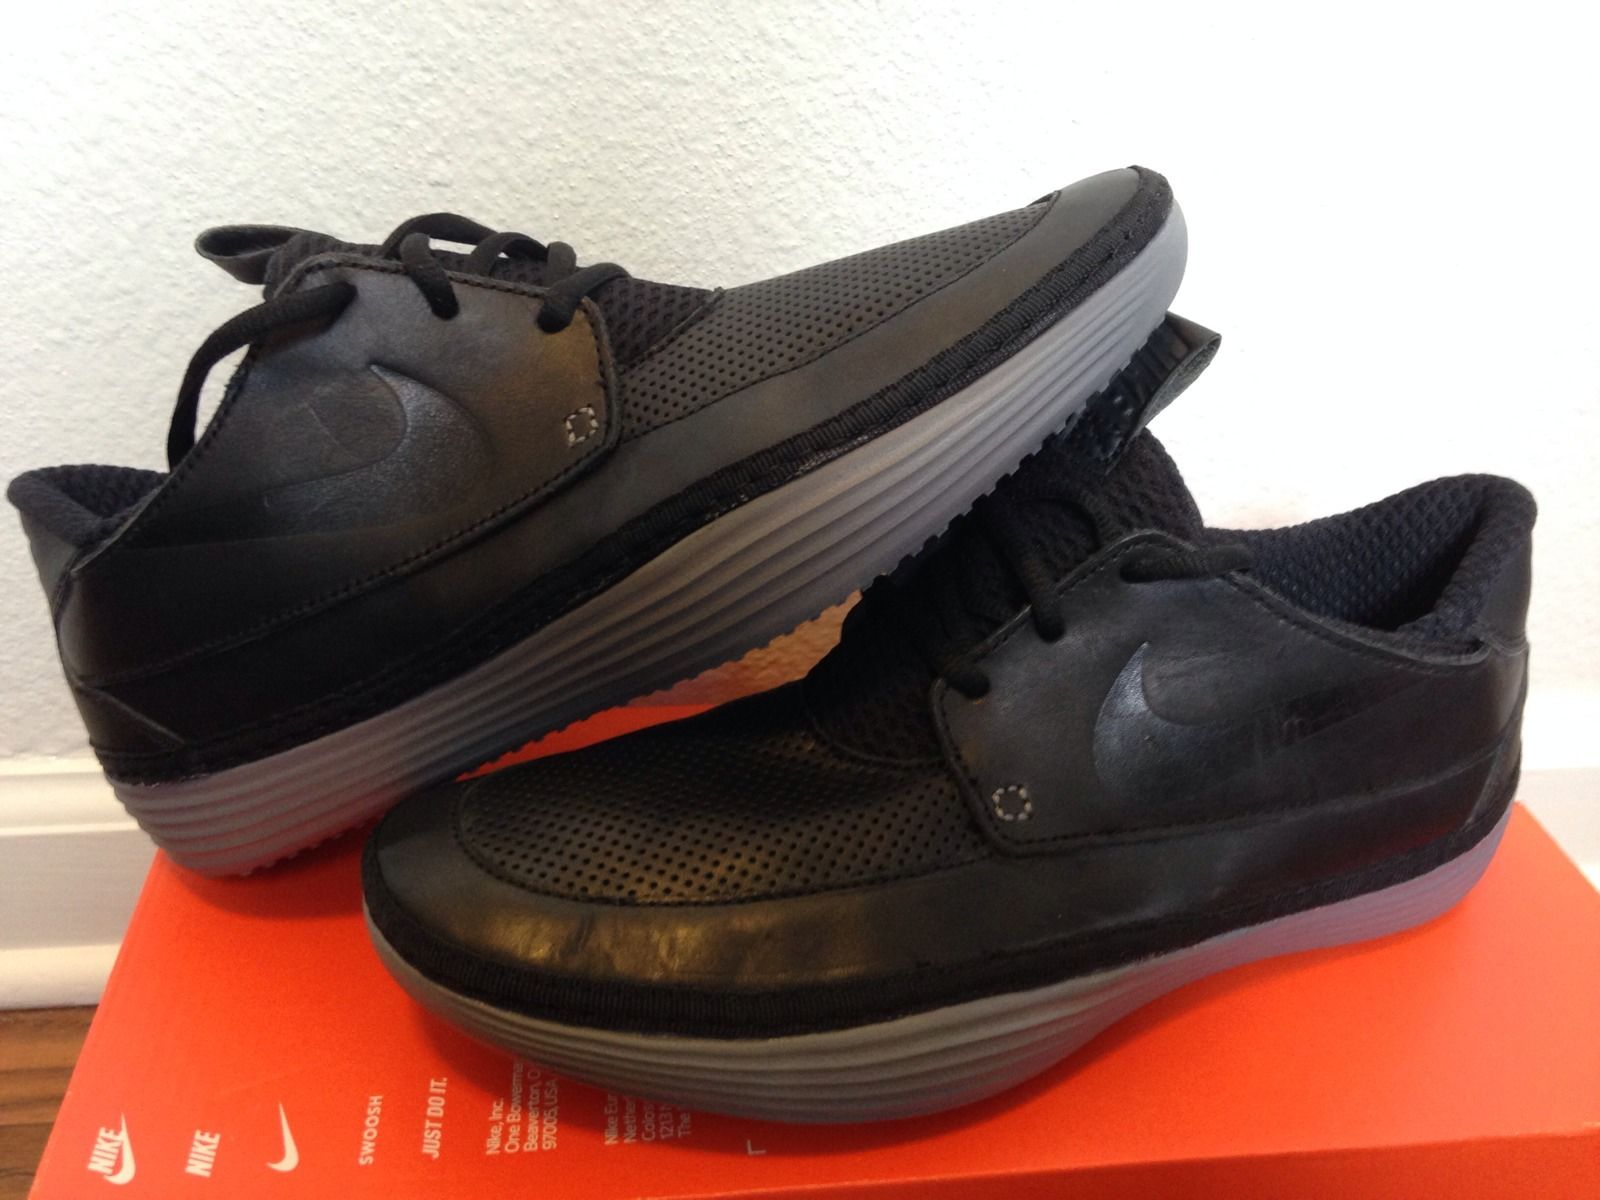 the latest 9a9aa b7214 Nike Solarsoft Moccasin - Black Leather Sample - SneakerNews.com